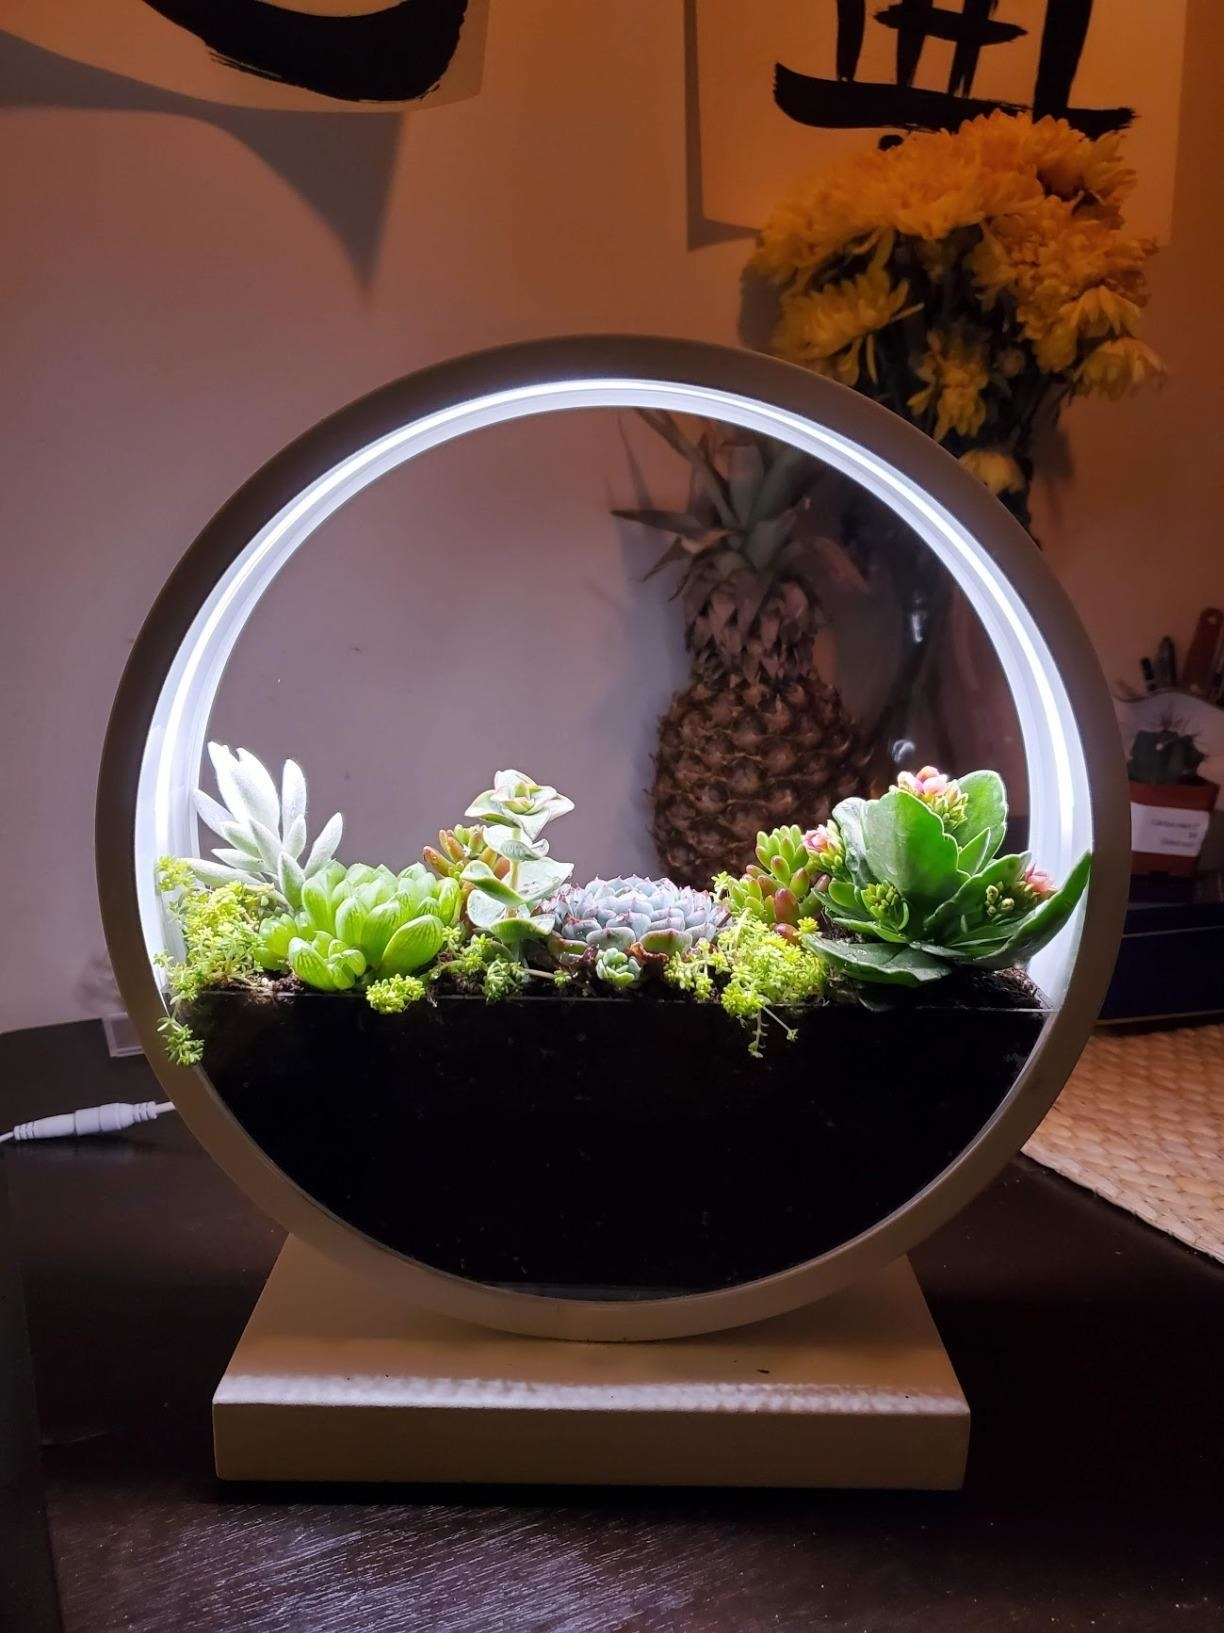 reviewer image of the make lemonade led planter growing succulents